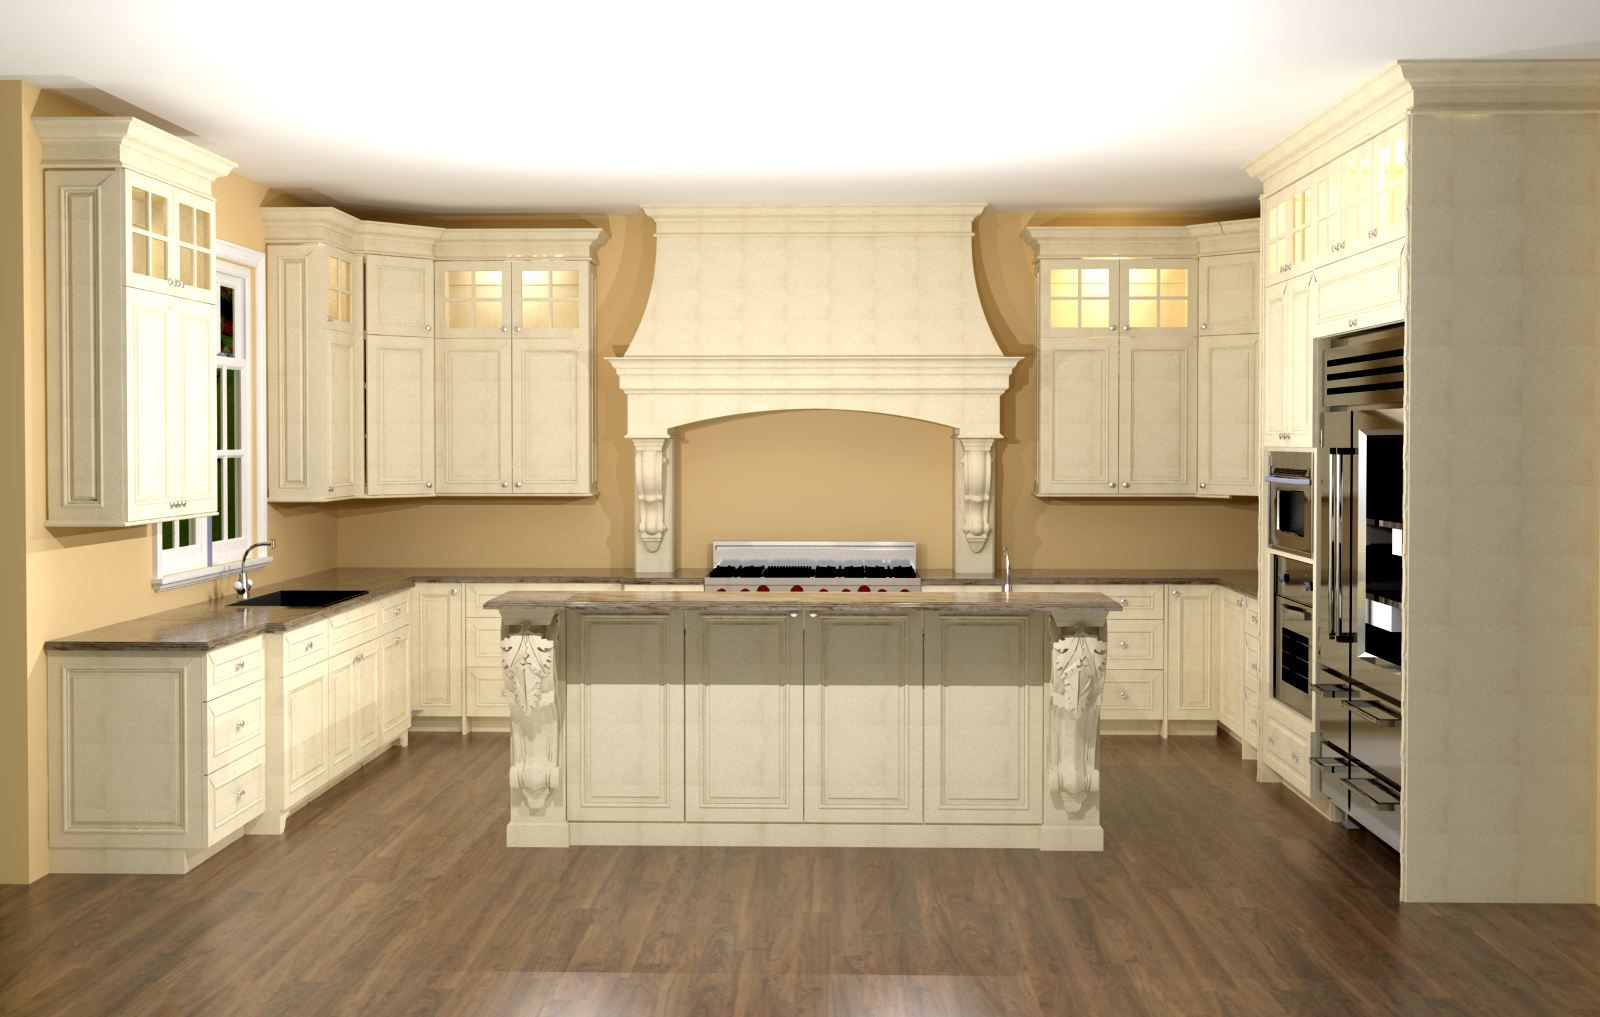 Large Kitchen Large Kitchen With Custom Hood Features Large Enkeboll Corbels On